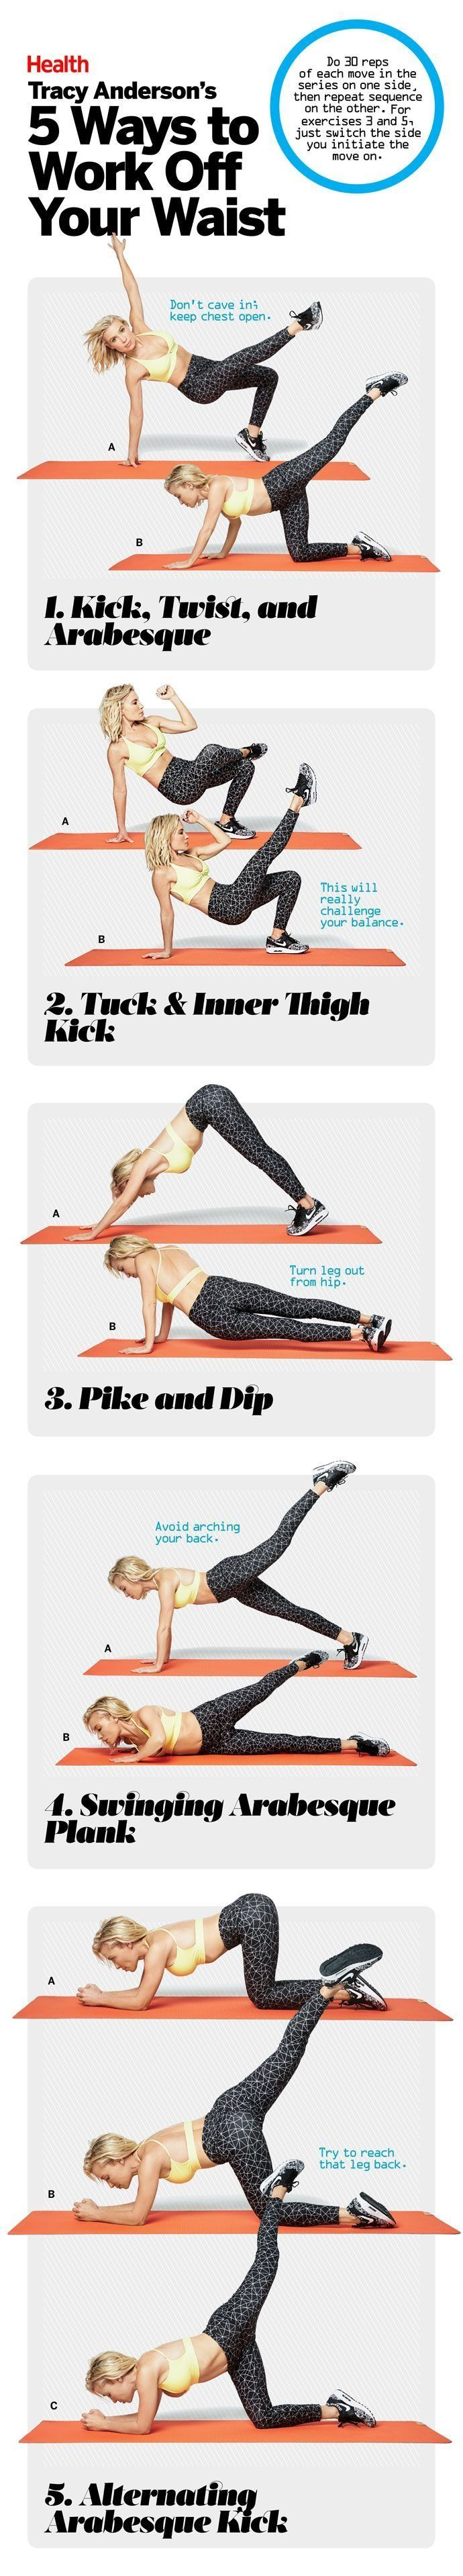 Because Tracy Anderson knows best. Here are 5 of the star trainer's fave exercises to work off your waist. | Find more relevant stuff: victoriajohnson.wordpress.com